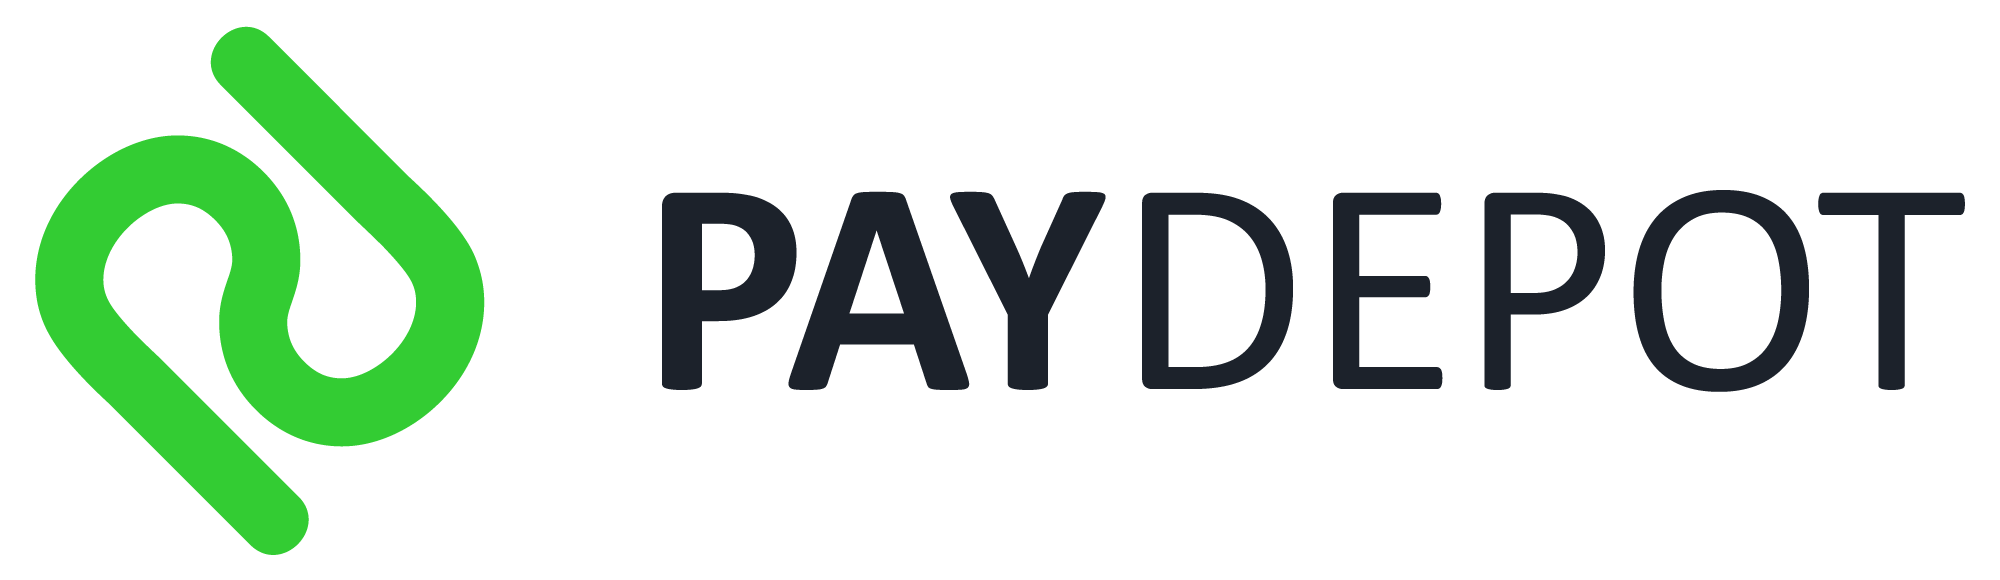 Paydepot Home